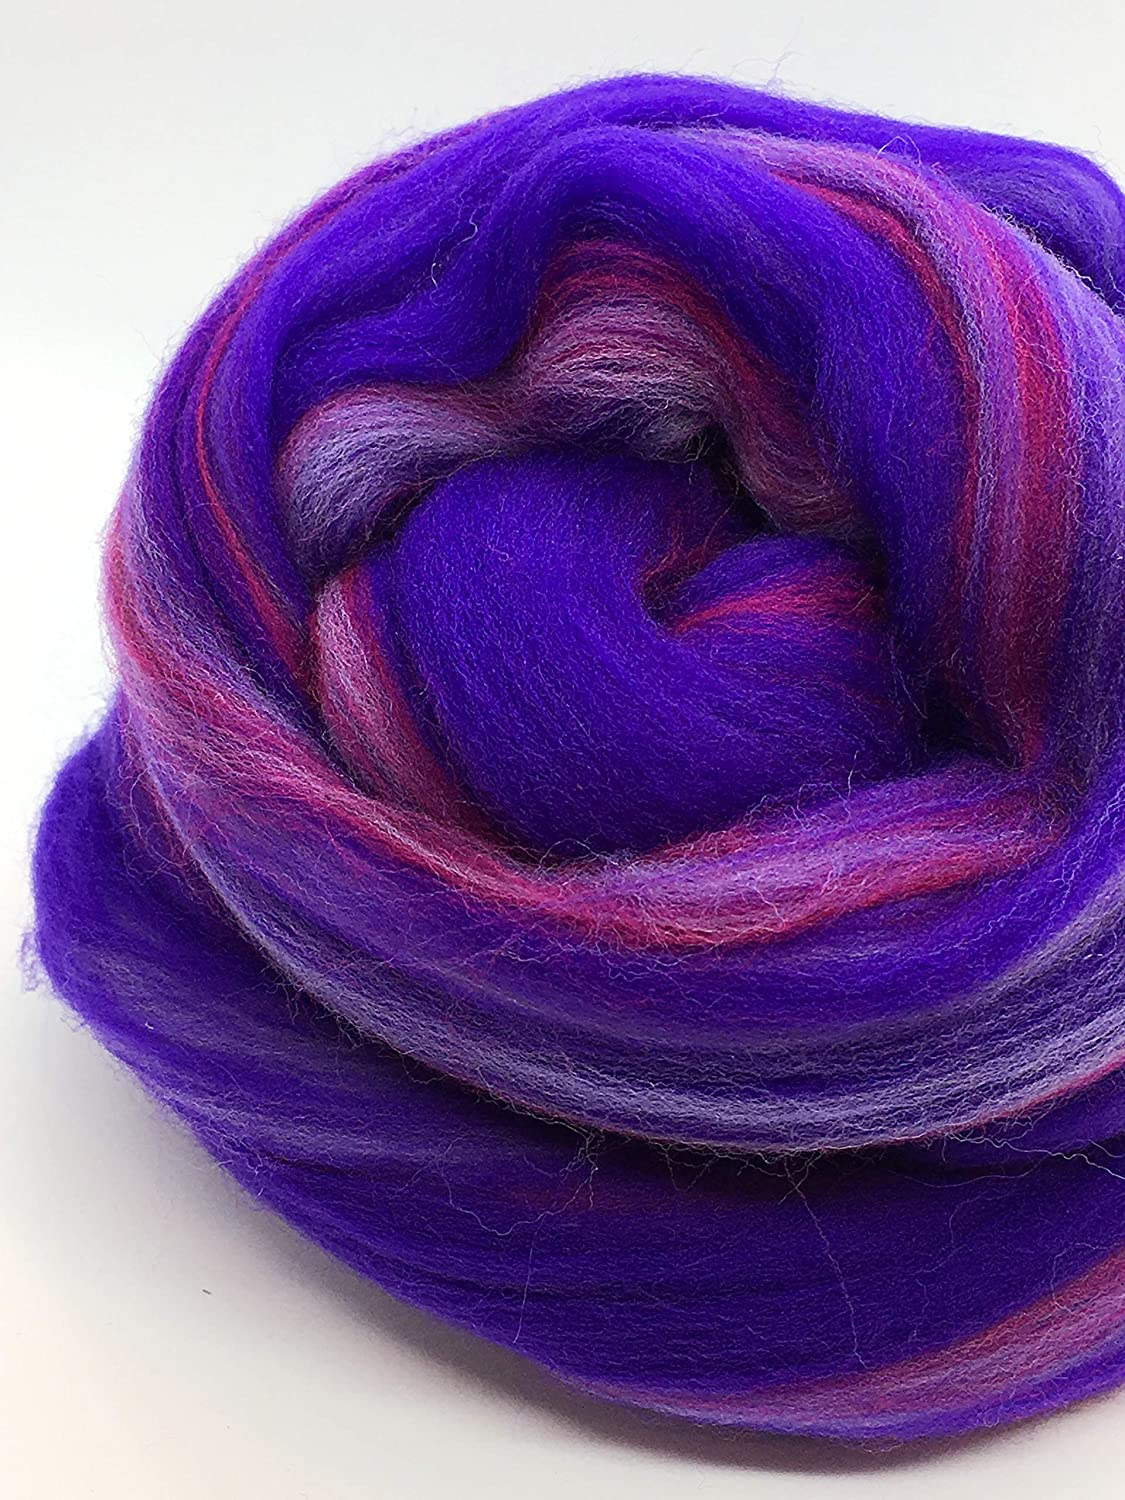 Sheps Sea Glass Merino Wool Top Roving Fiber Spinning Felting Crafts USA 1 oz